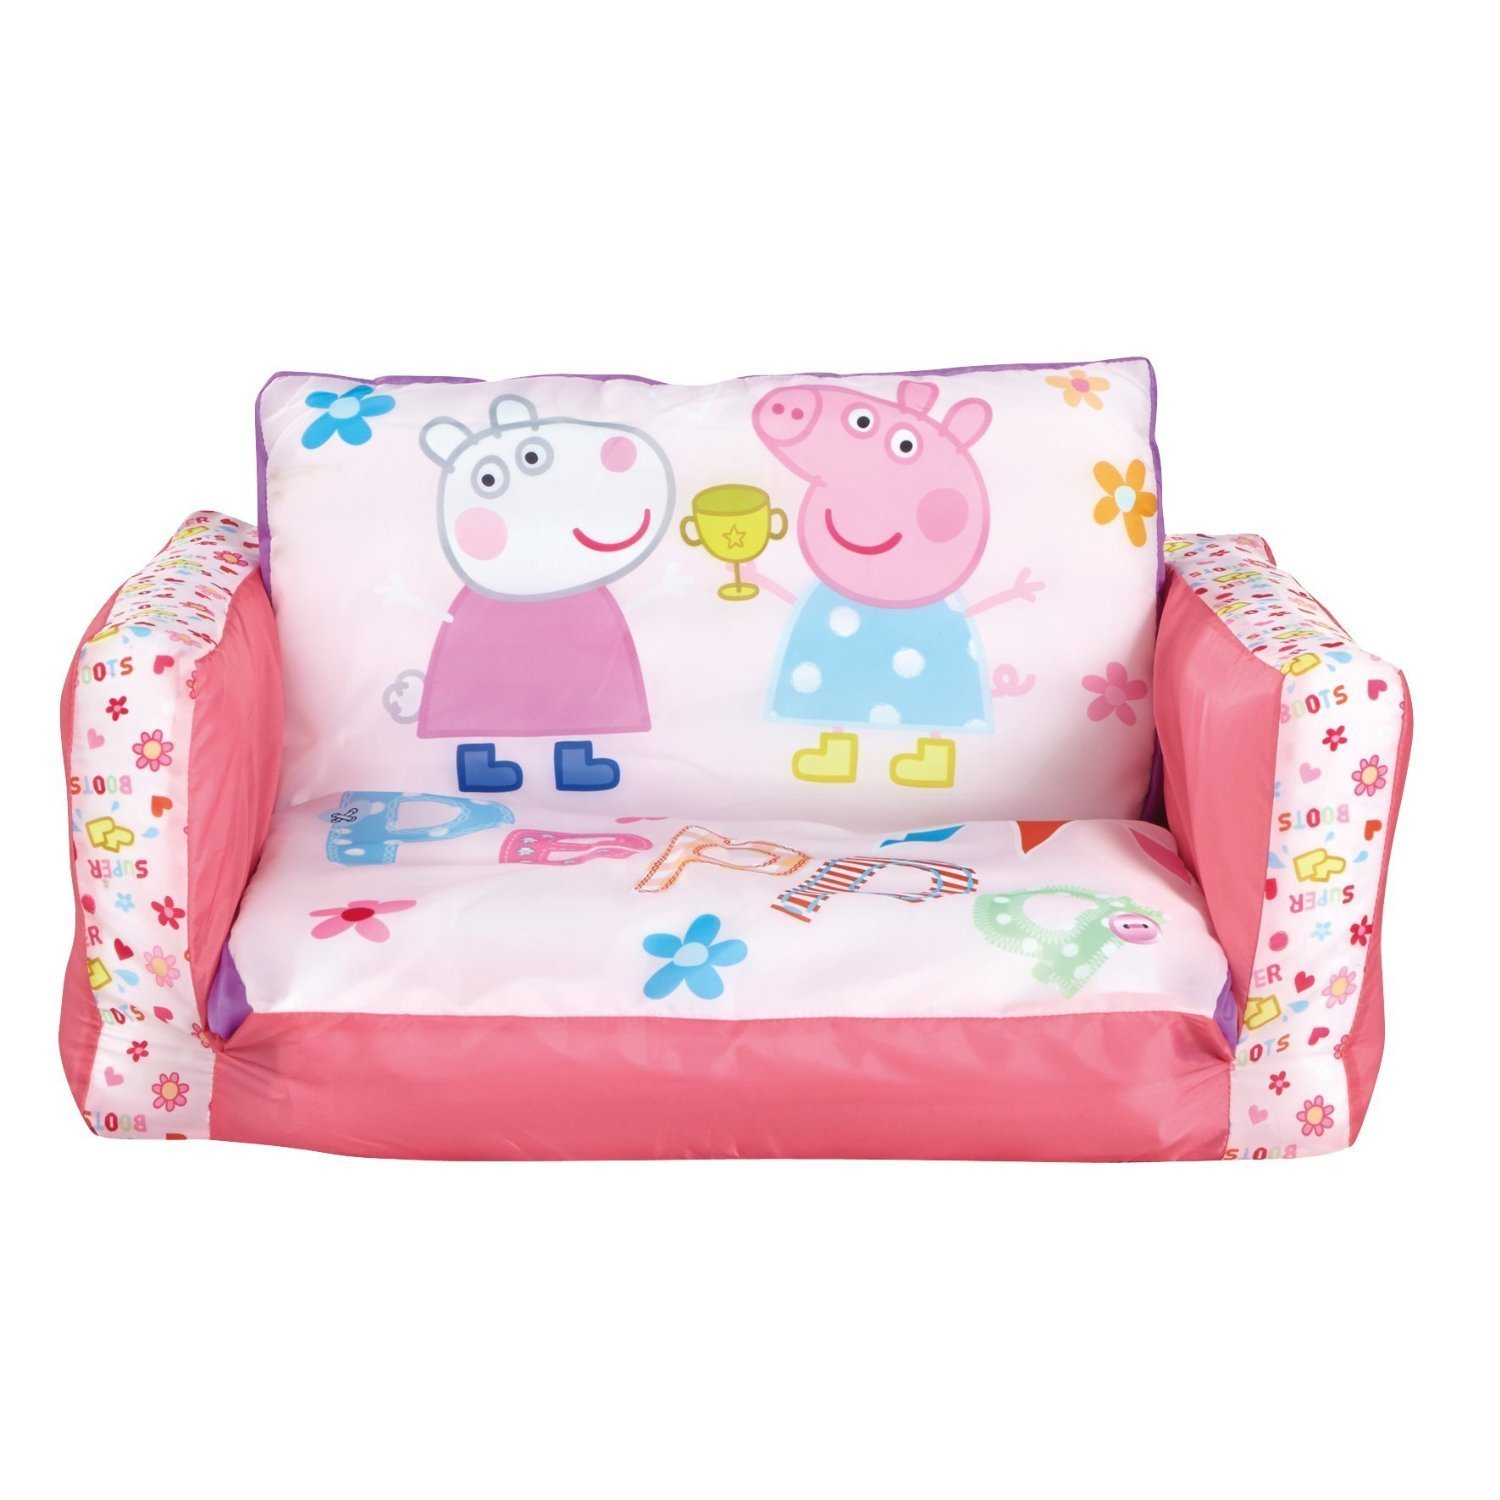 Peppa Pig Bedroom Accessories Amazoncom Peppa Pig Inflatable Chair For Kids With Removable